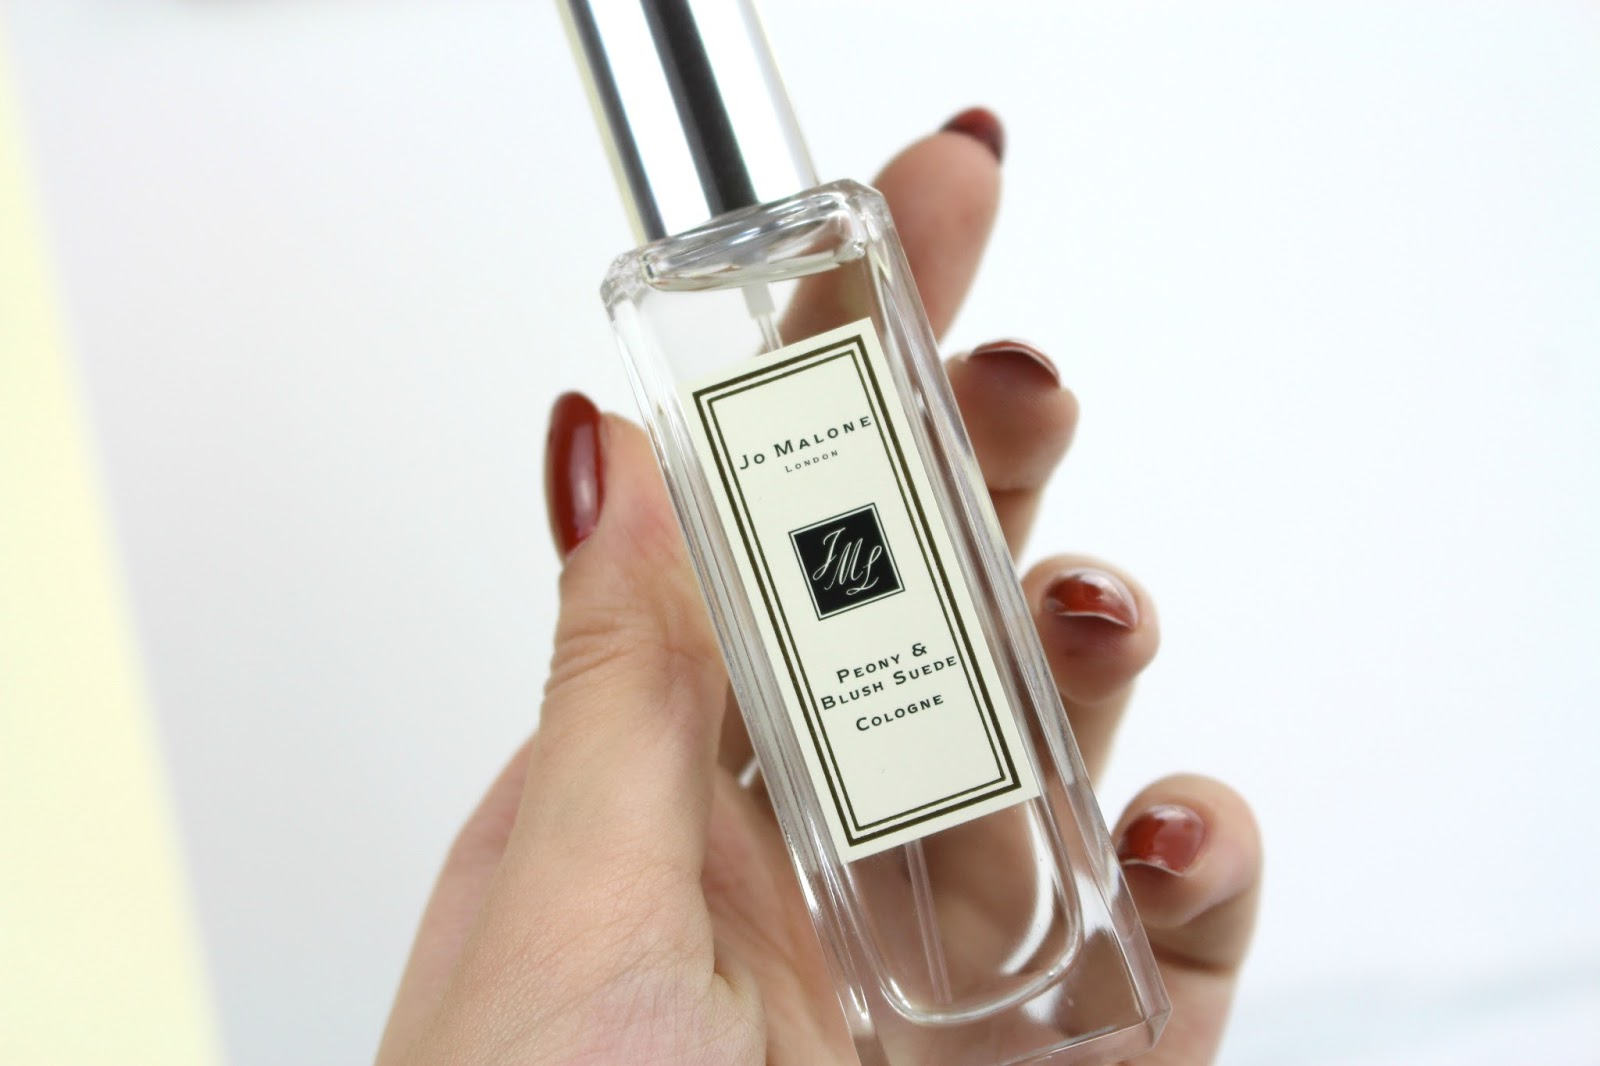 jo malone parfume, jo malone, jo malone london, peony & blush suede, jo malone peony & blush suede, different is better